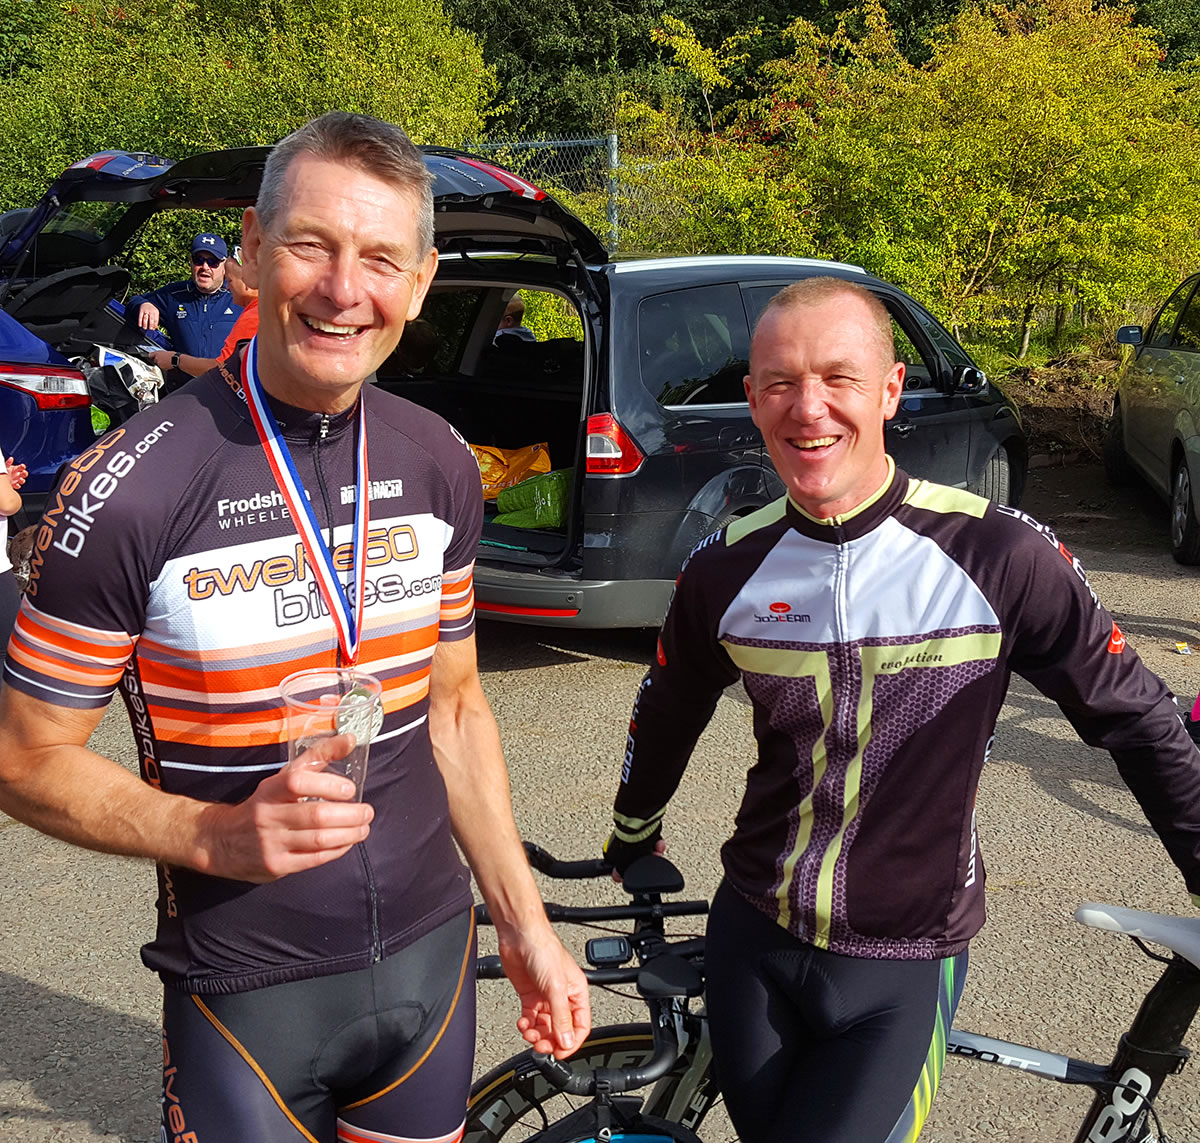 dave arundale mike leadbeater hatton 10 time trial